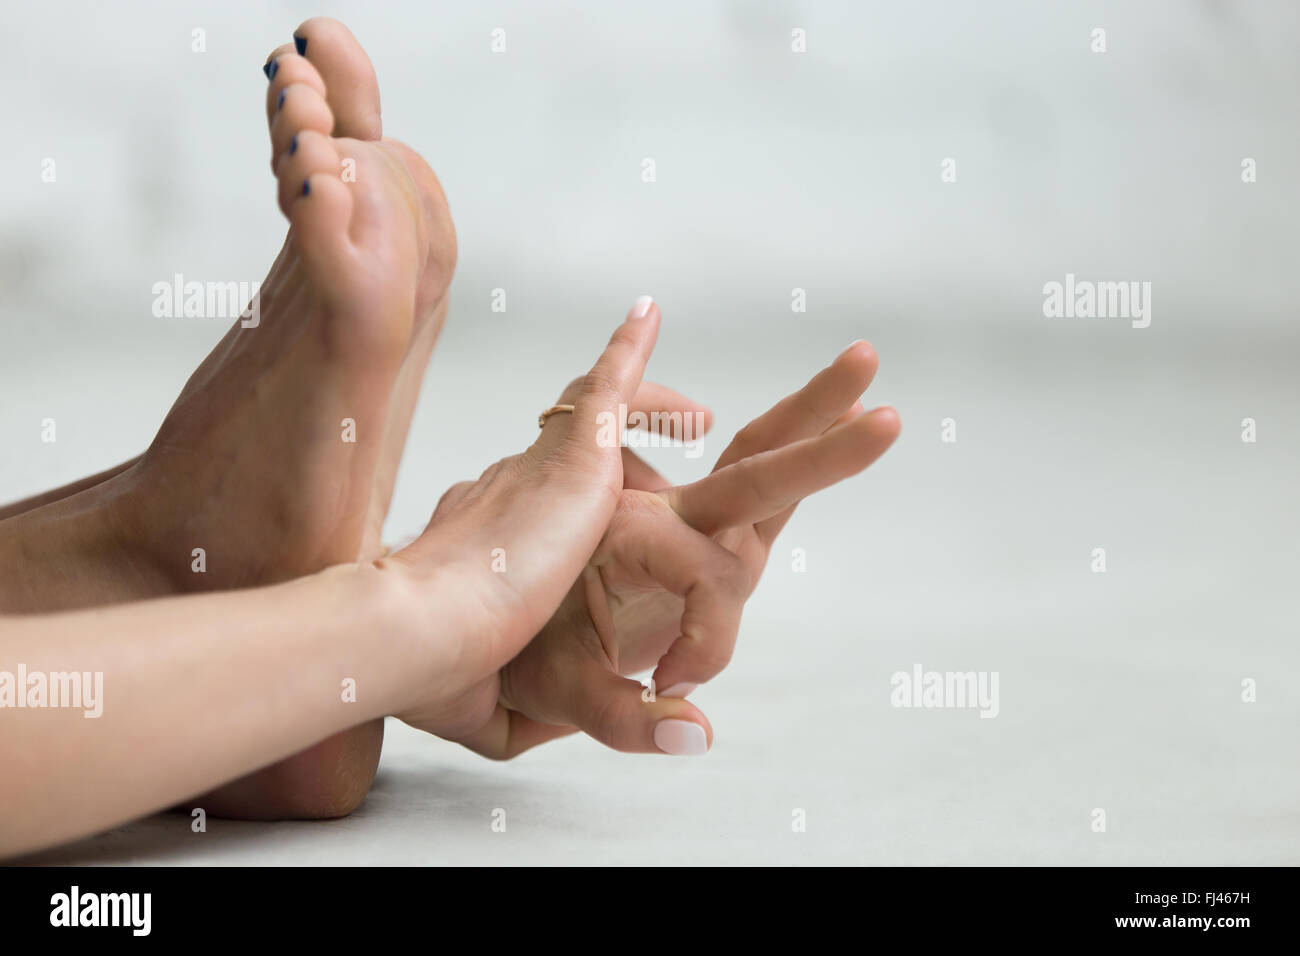 Beautiful young woman working out indoors, doing yoga exercise, stretching, holding hands in Gyan Mudra - Mudra - Stock Image